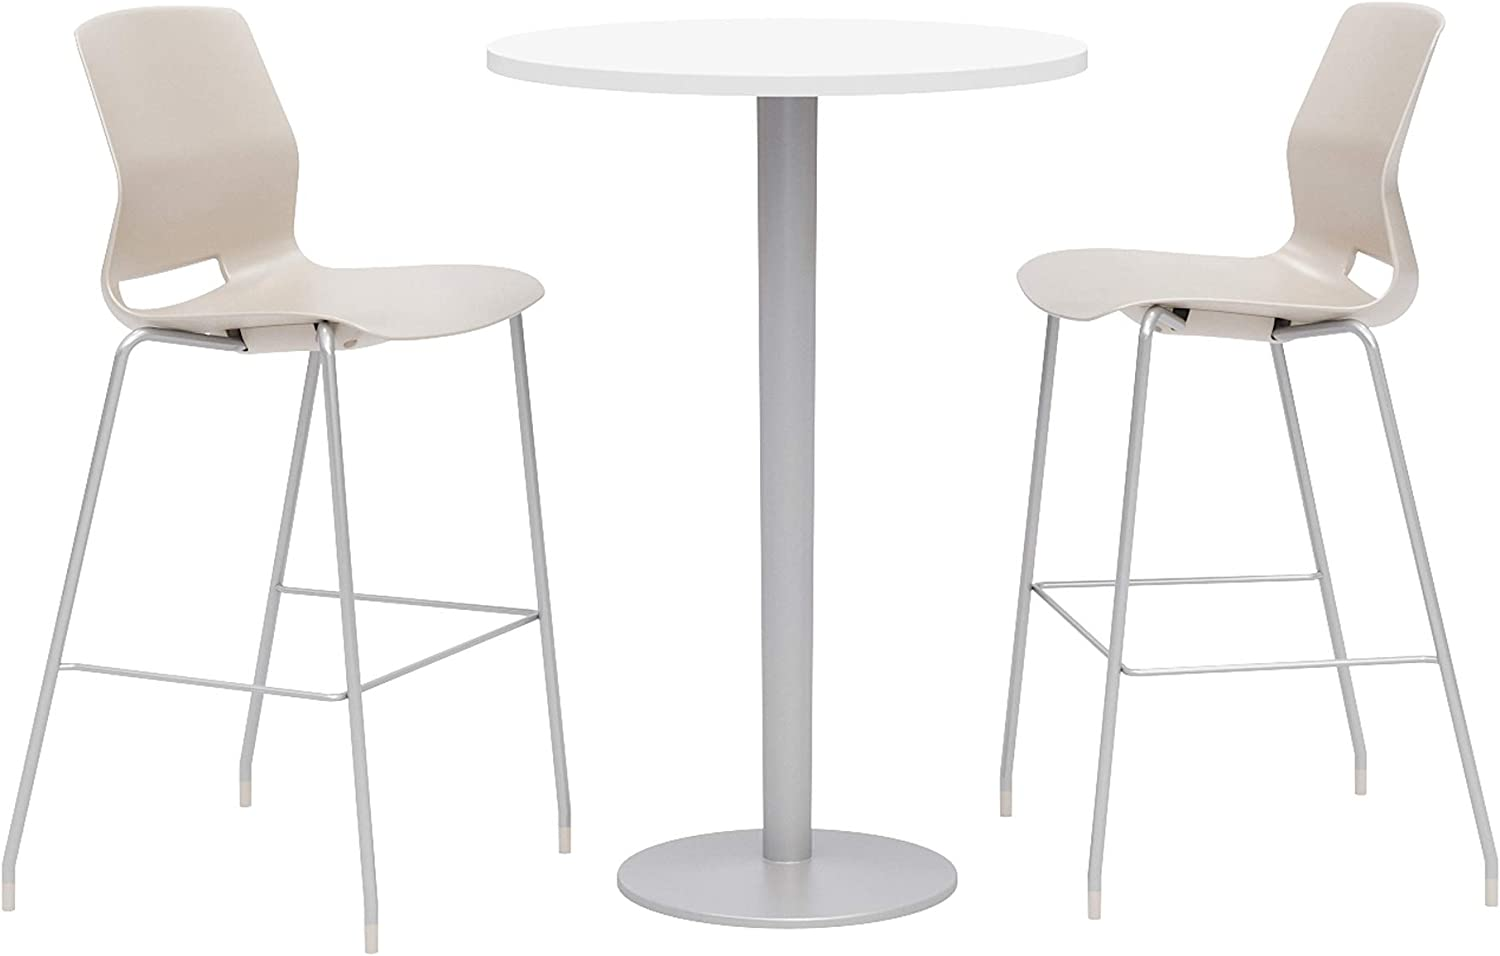 Olio Designs Dining Room Furniture, Designer White Table, Moonbeam Stools